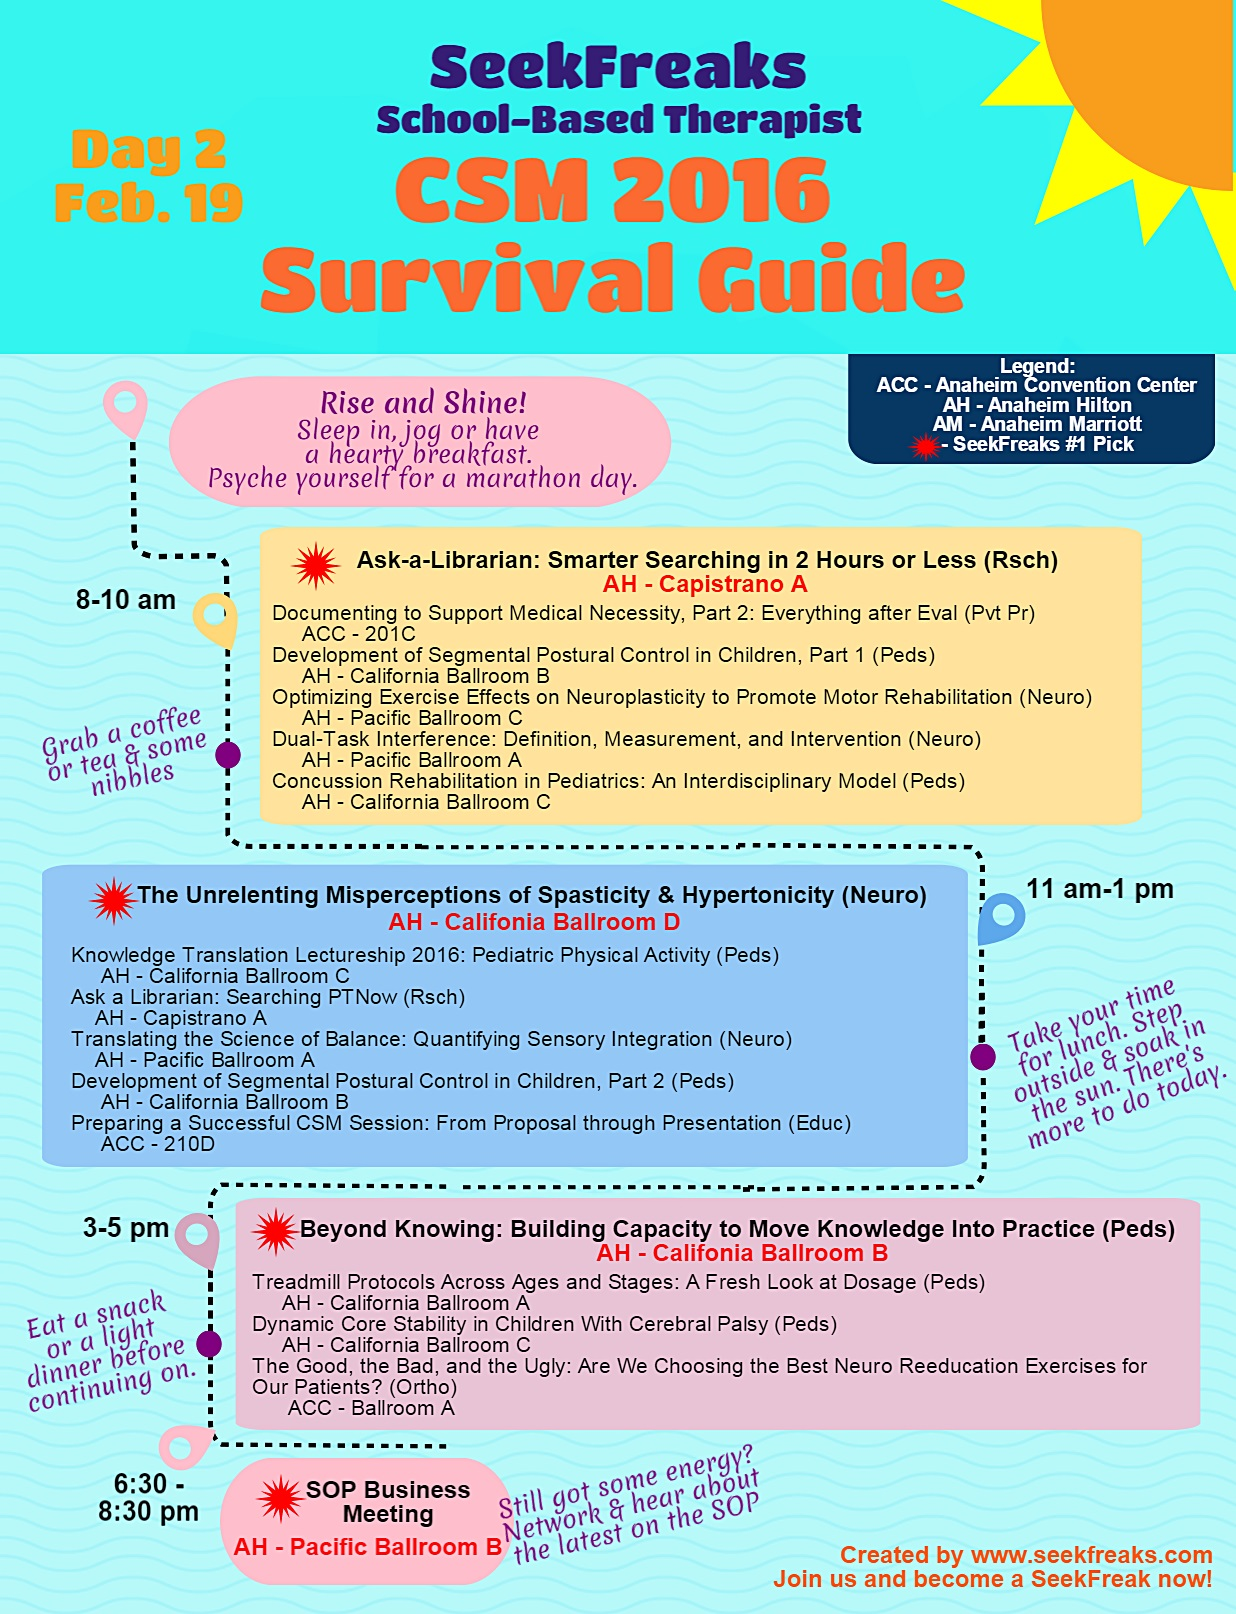 SeekFreaks School-based Therapist CSM 2016 Survival Guide - Day 2